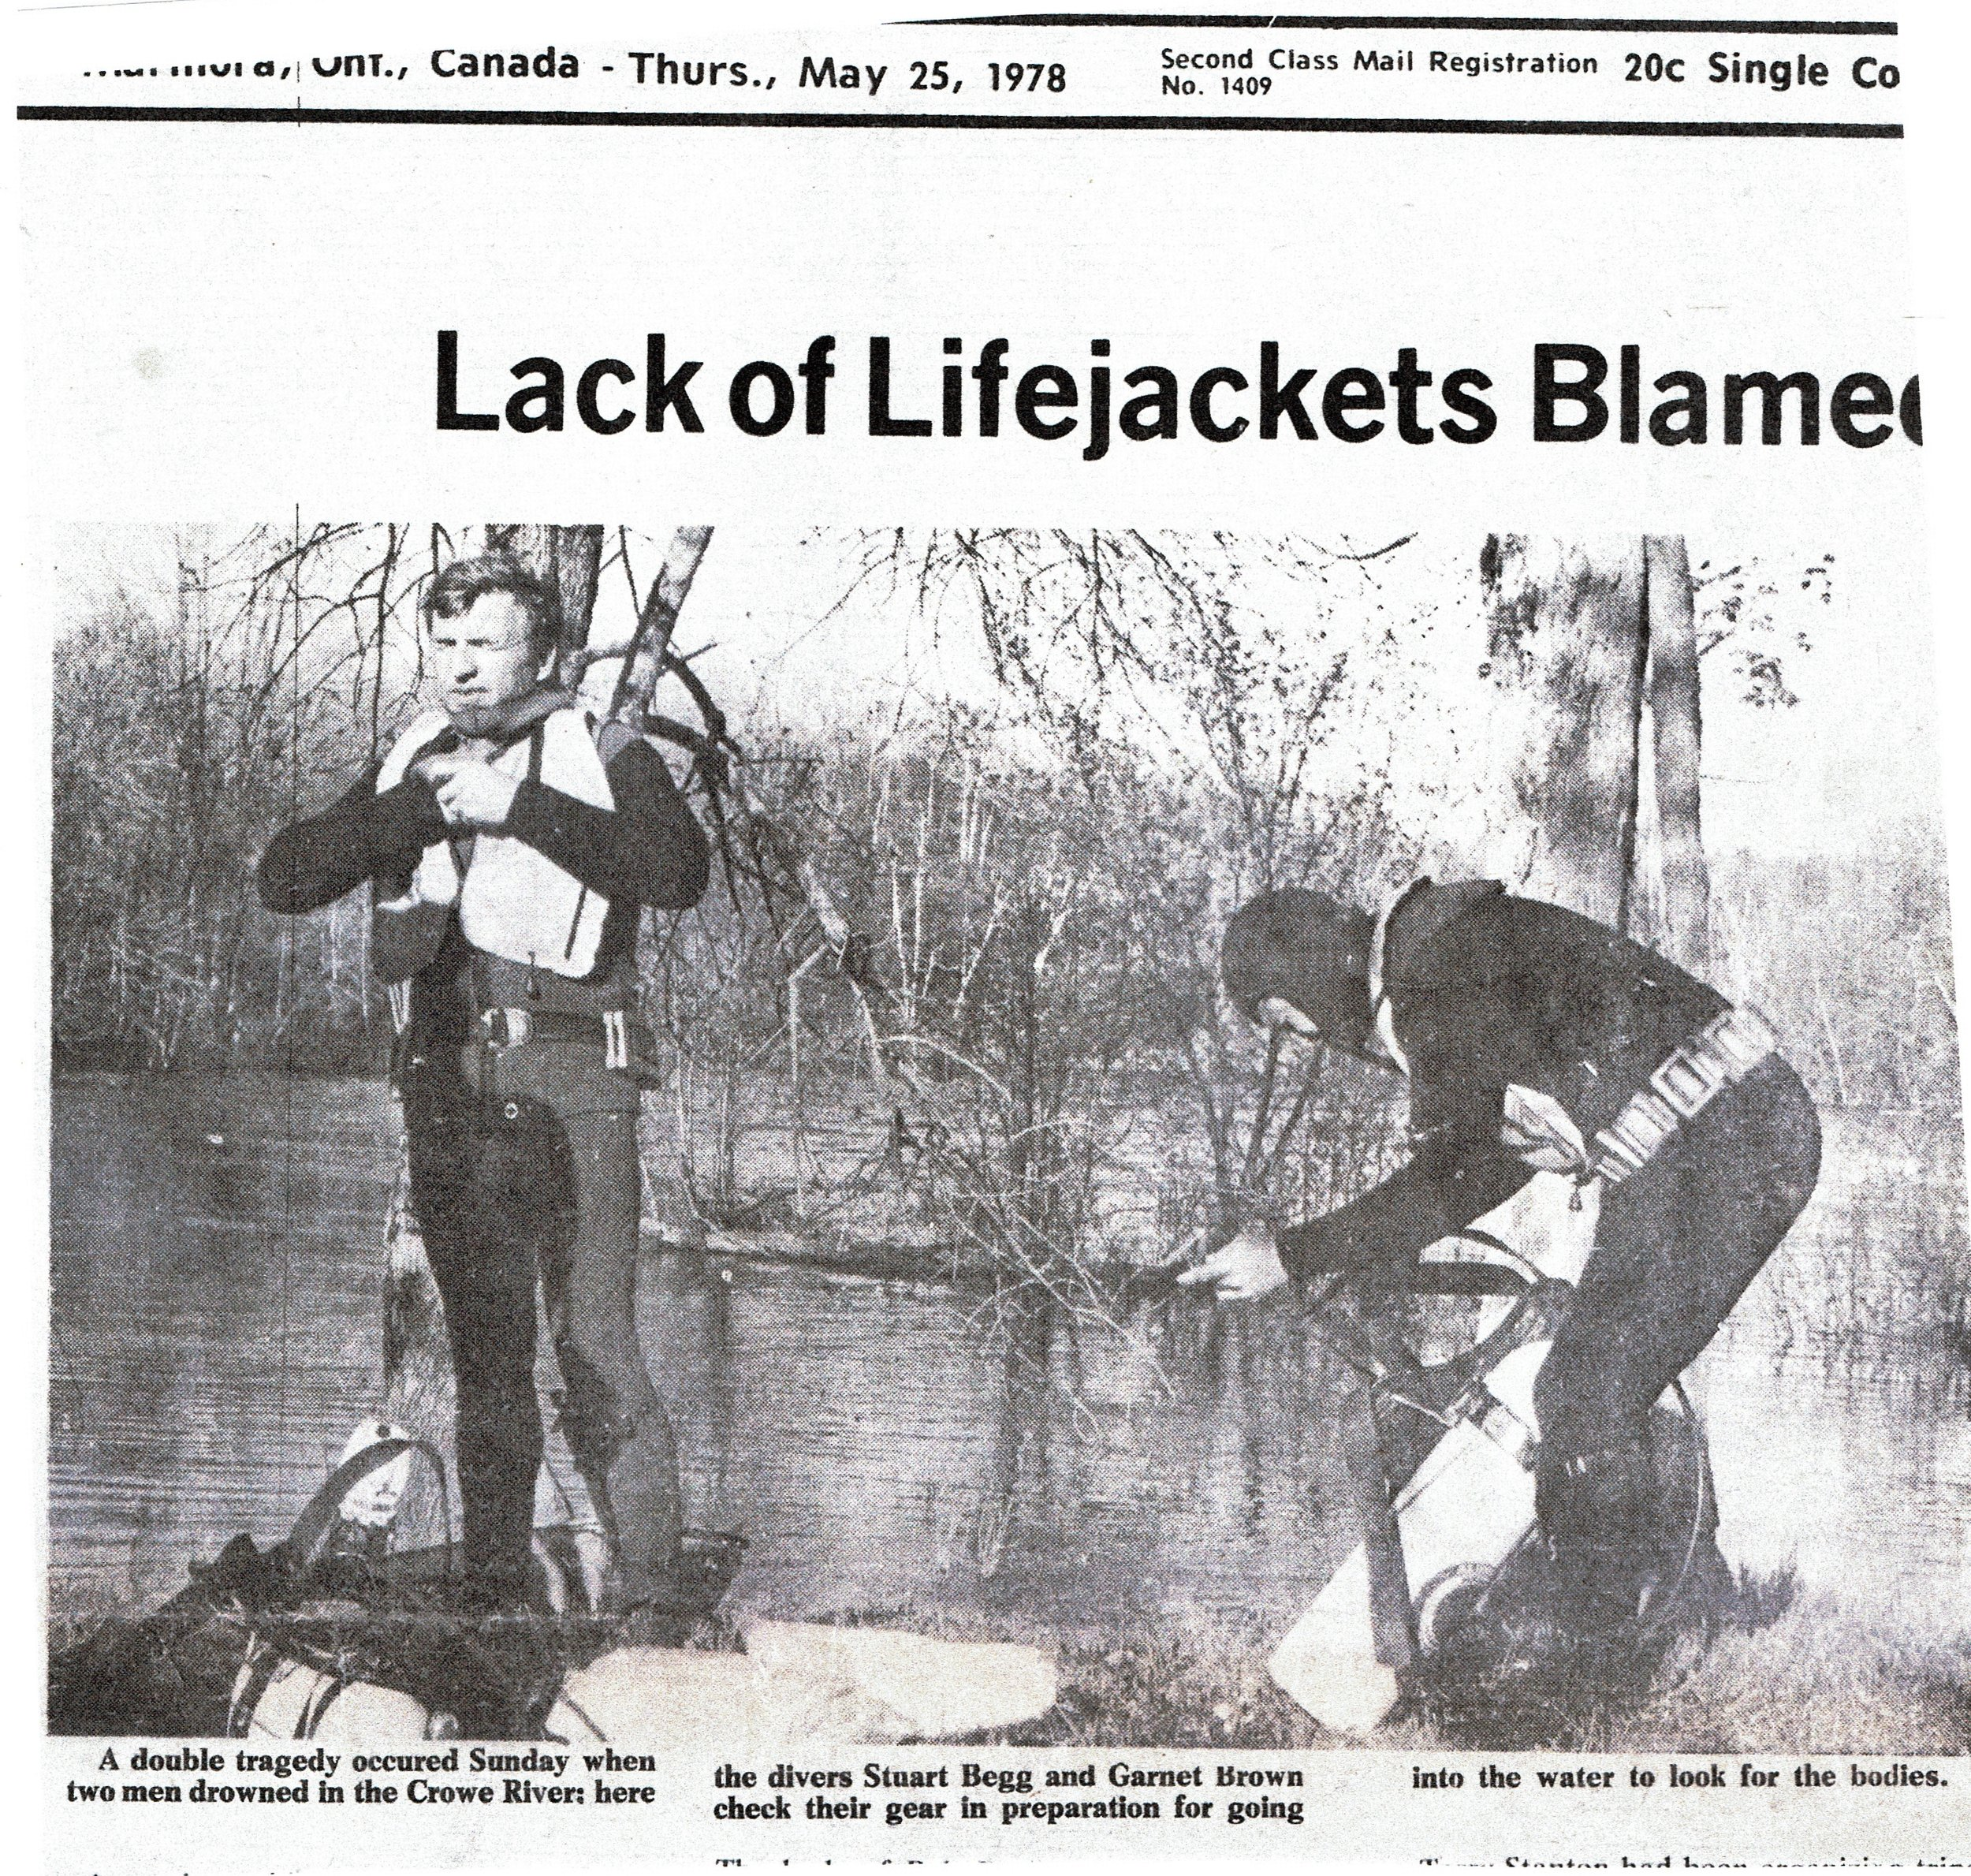 1978 Drowning on Crowe River photo.jpg